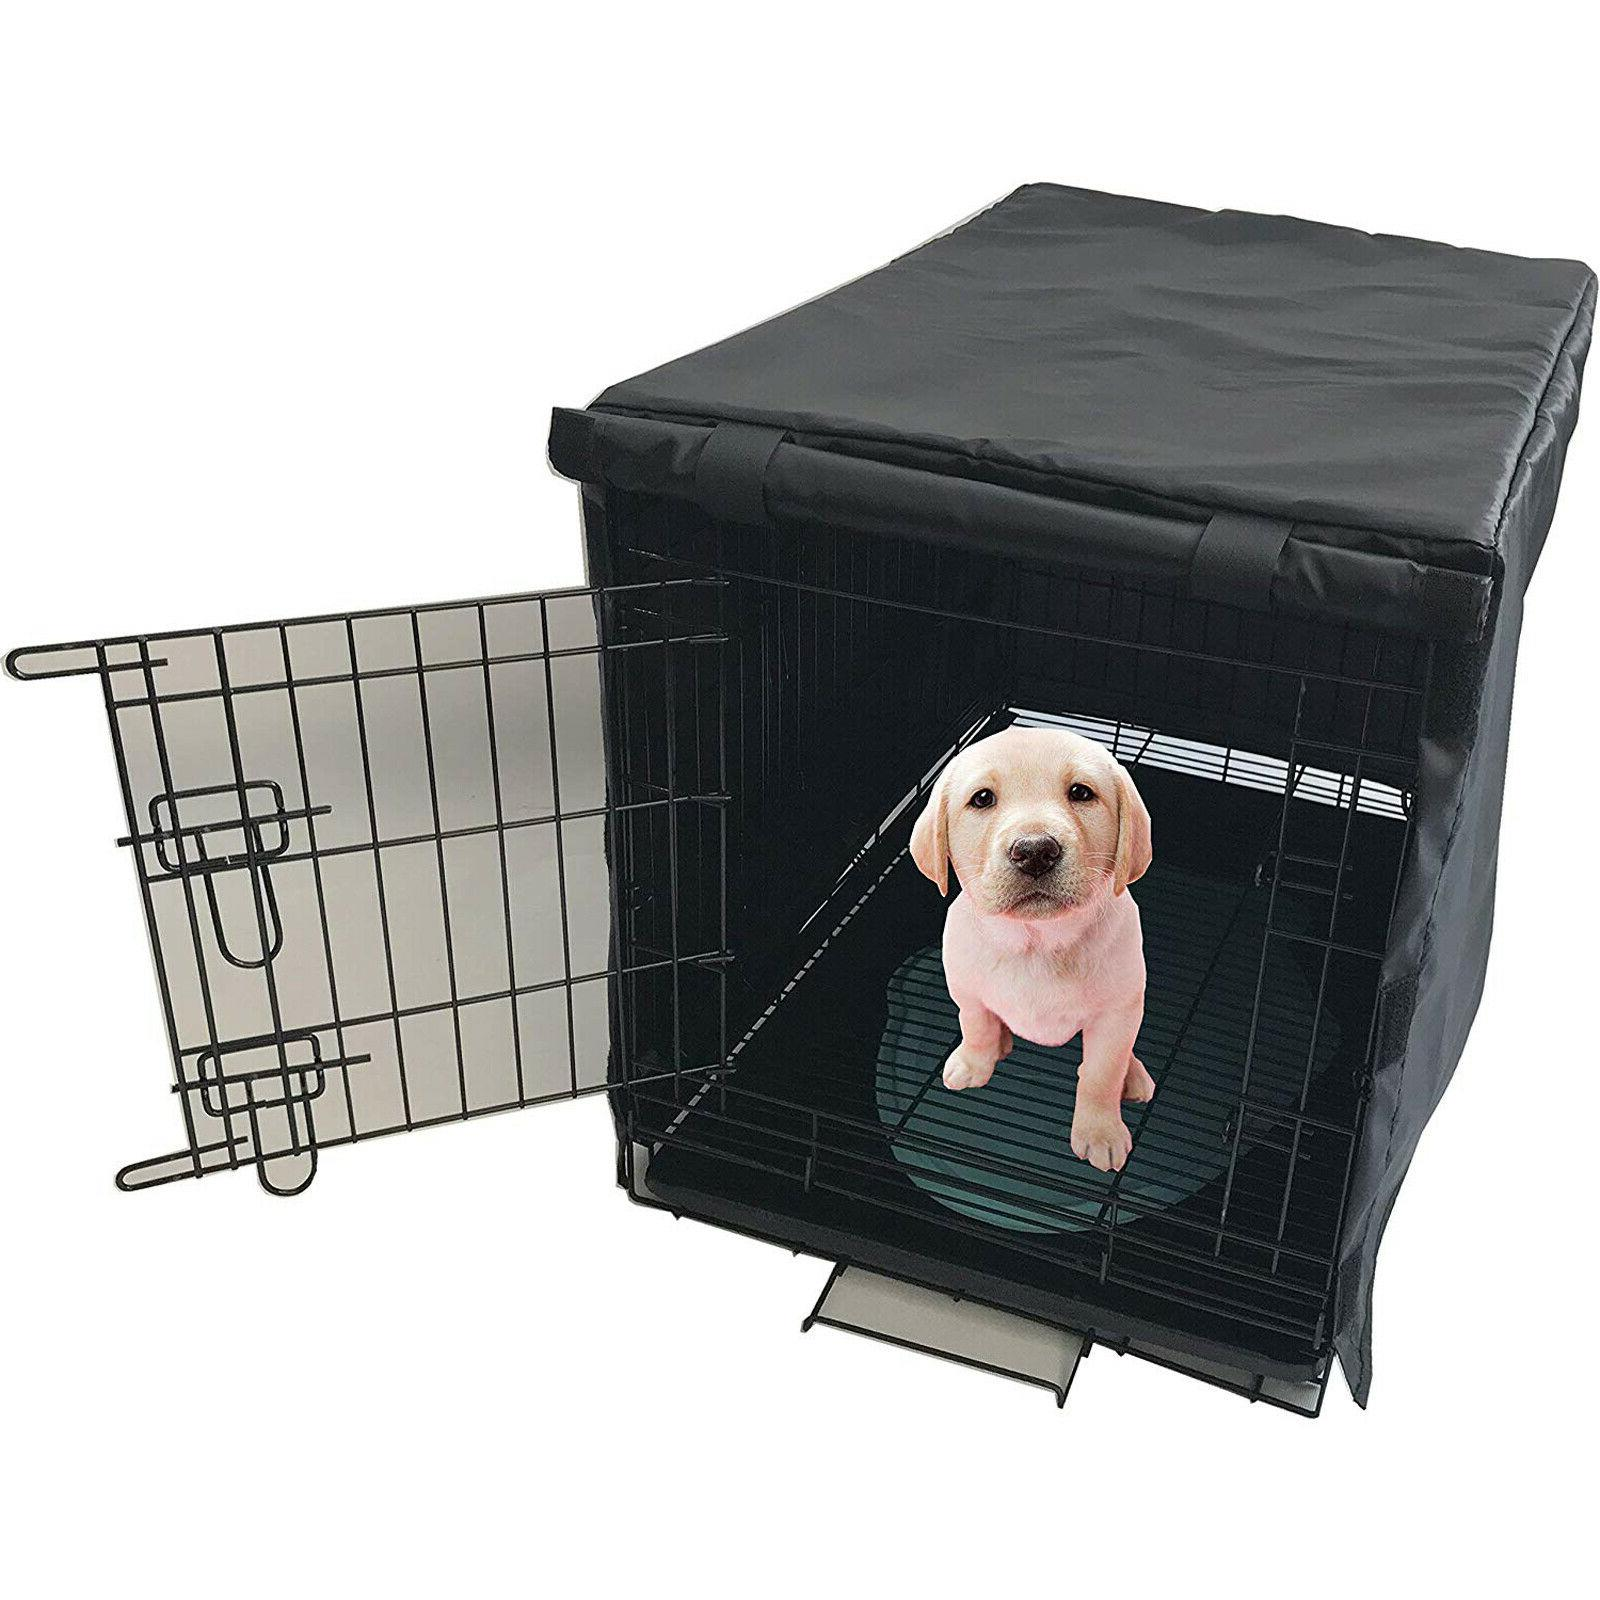 Dog Crate Pet Kennel COVER Black Time